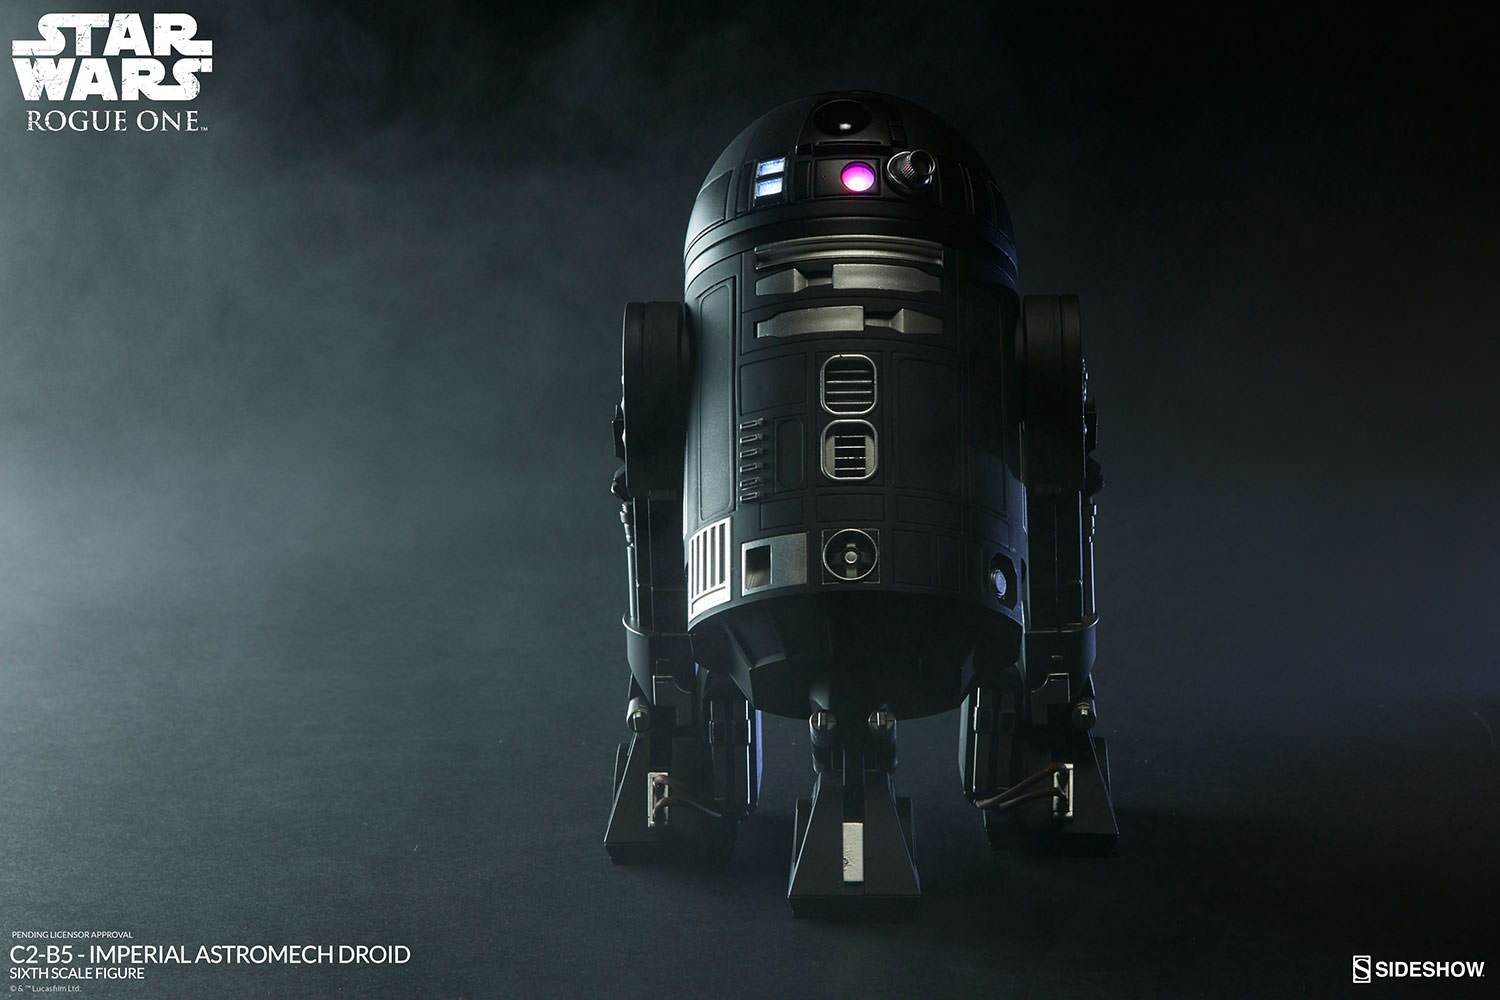 star-wars-rogue-one-c2-b5-imperial-astromech-droid-sixth-scale-100417-02